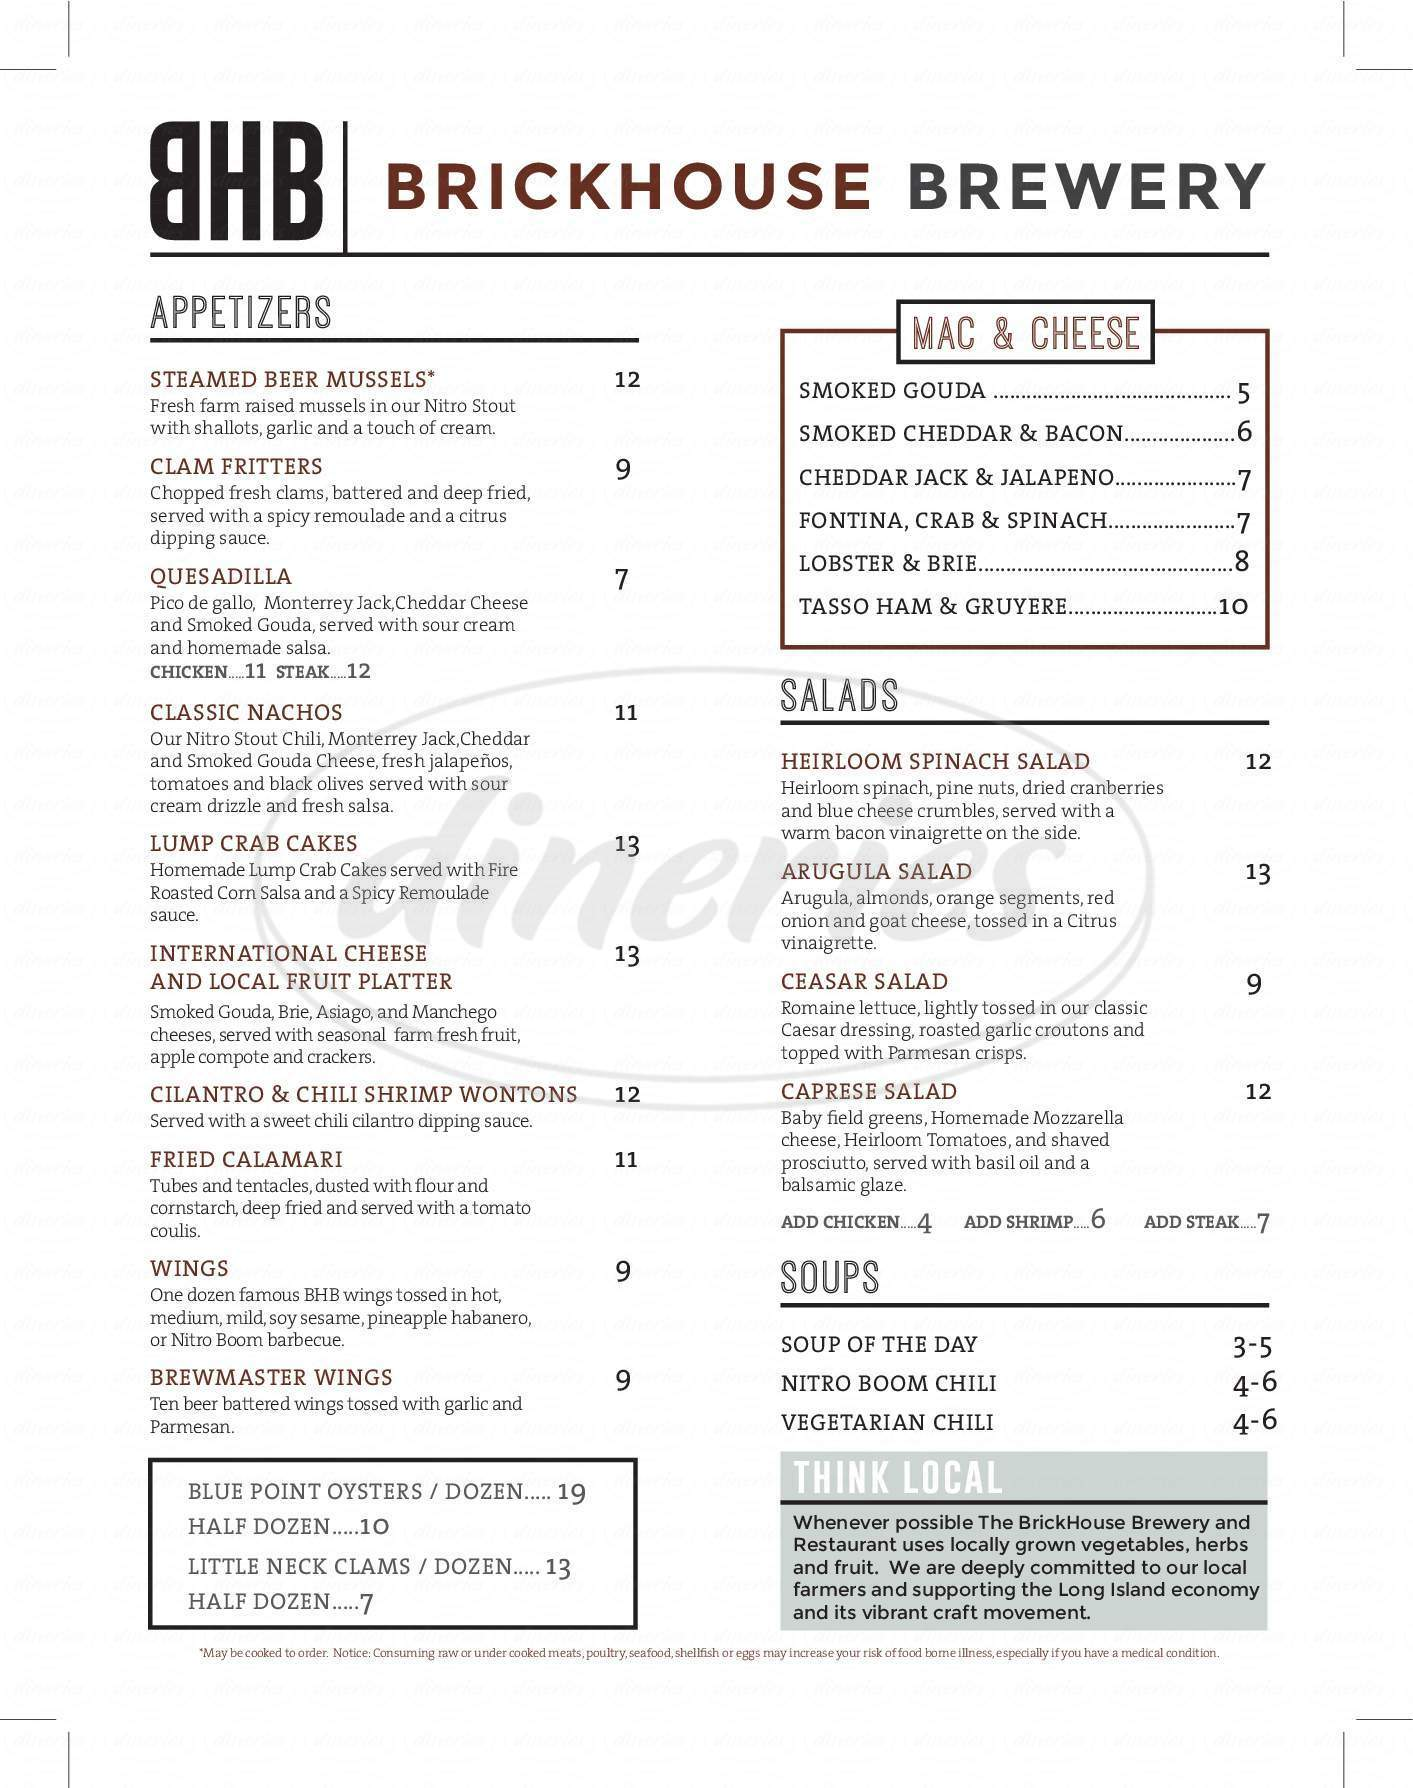 menu for BrickHouse Brewery & Restaurant